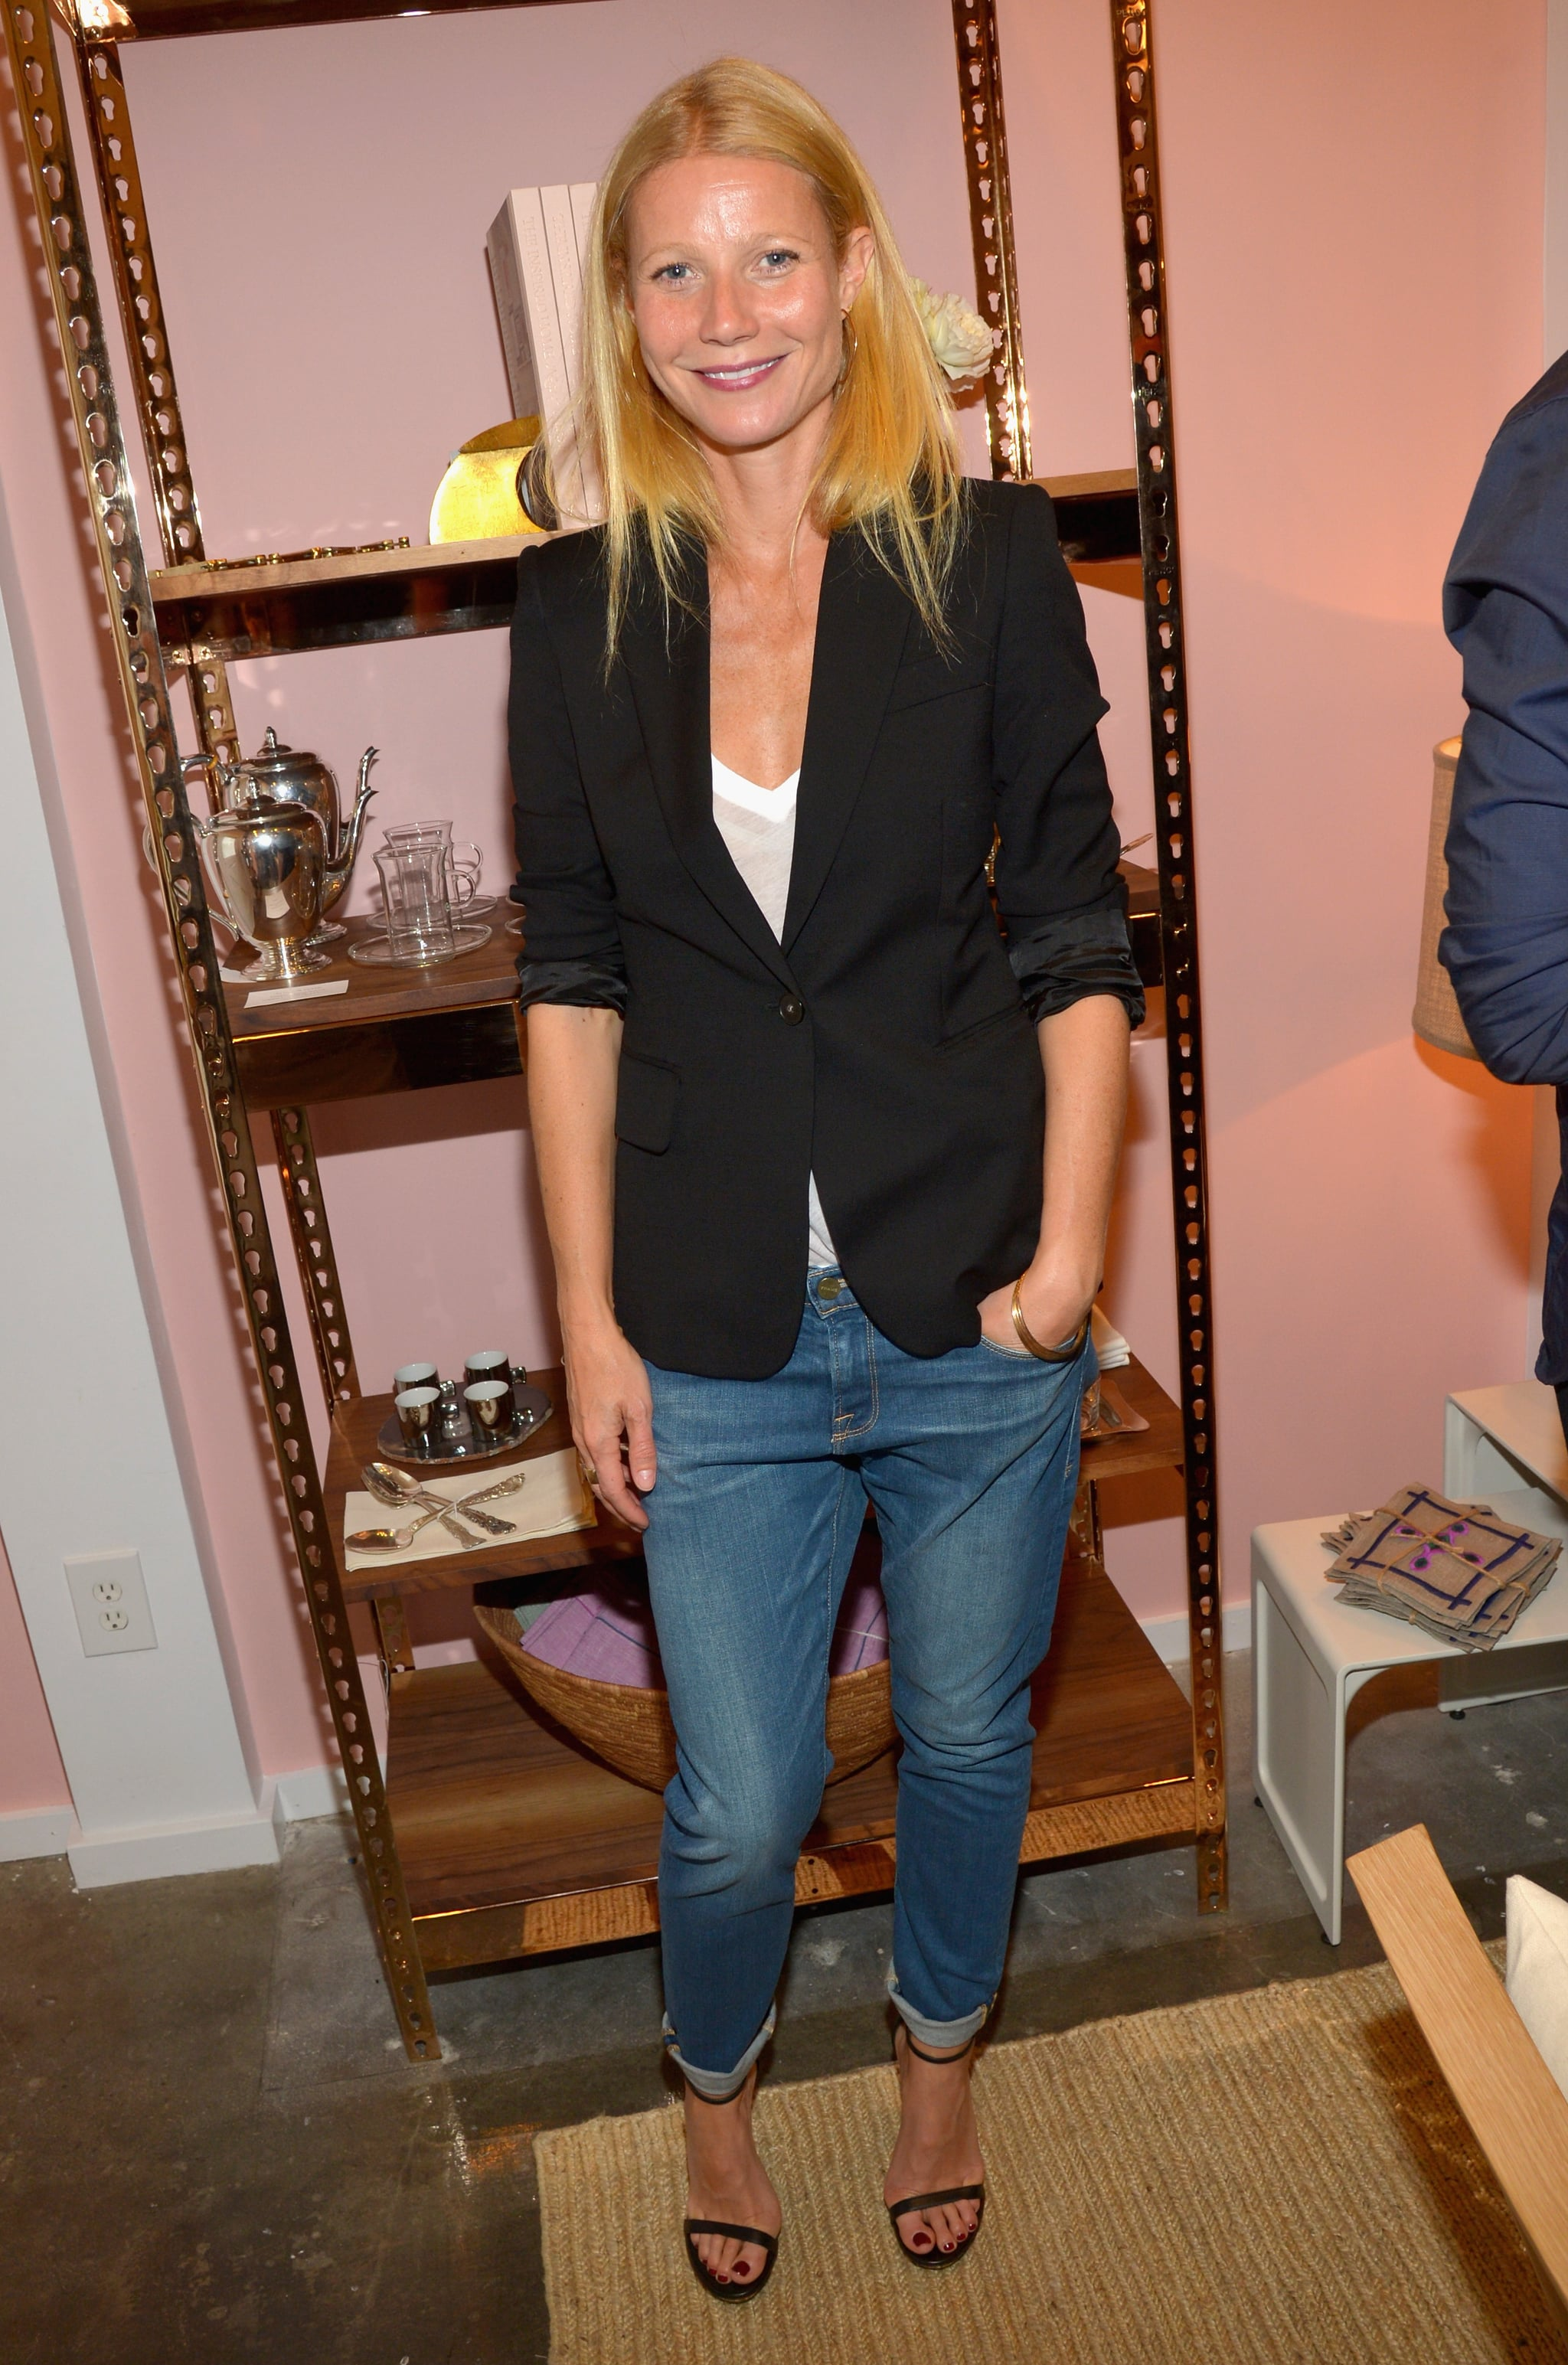 Gwyneth Paltrow Gets Support From Her Mom on a Big New Venture